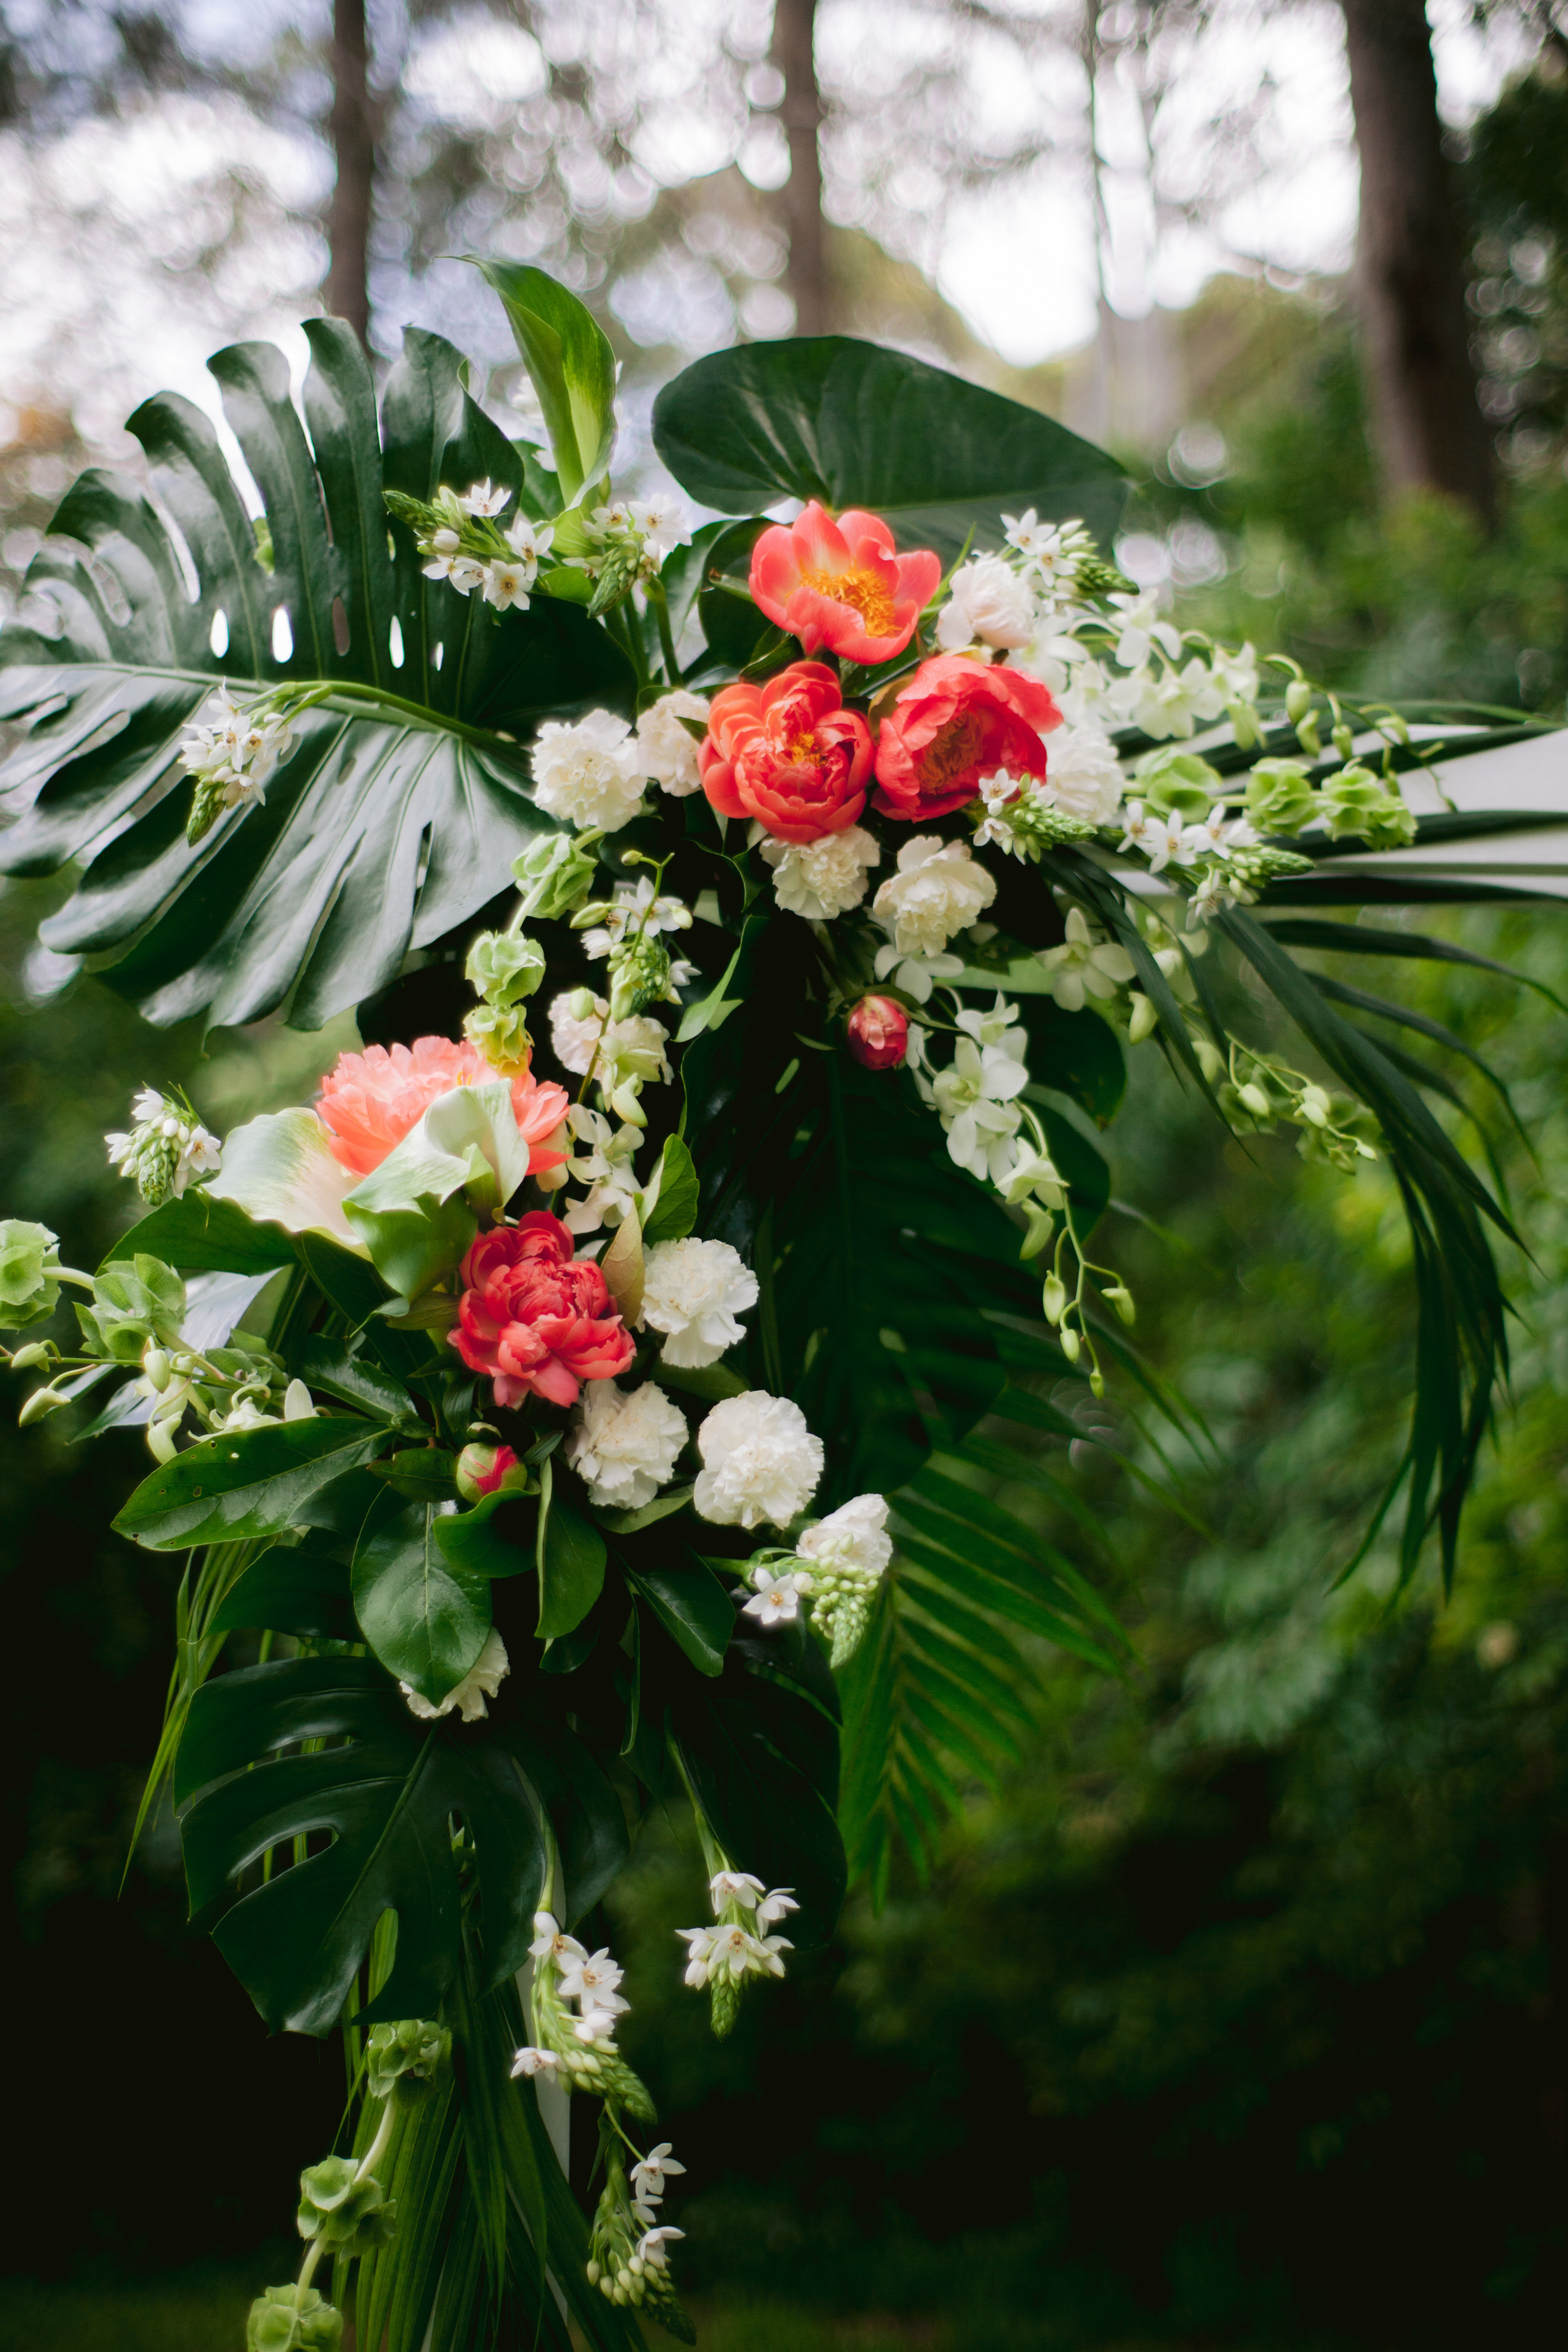 Tropical with peonies arbour Sally Bay 002.jpg